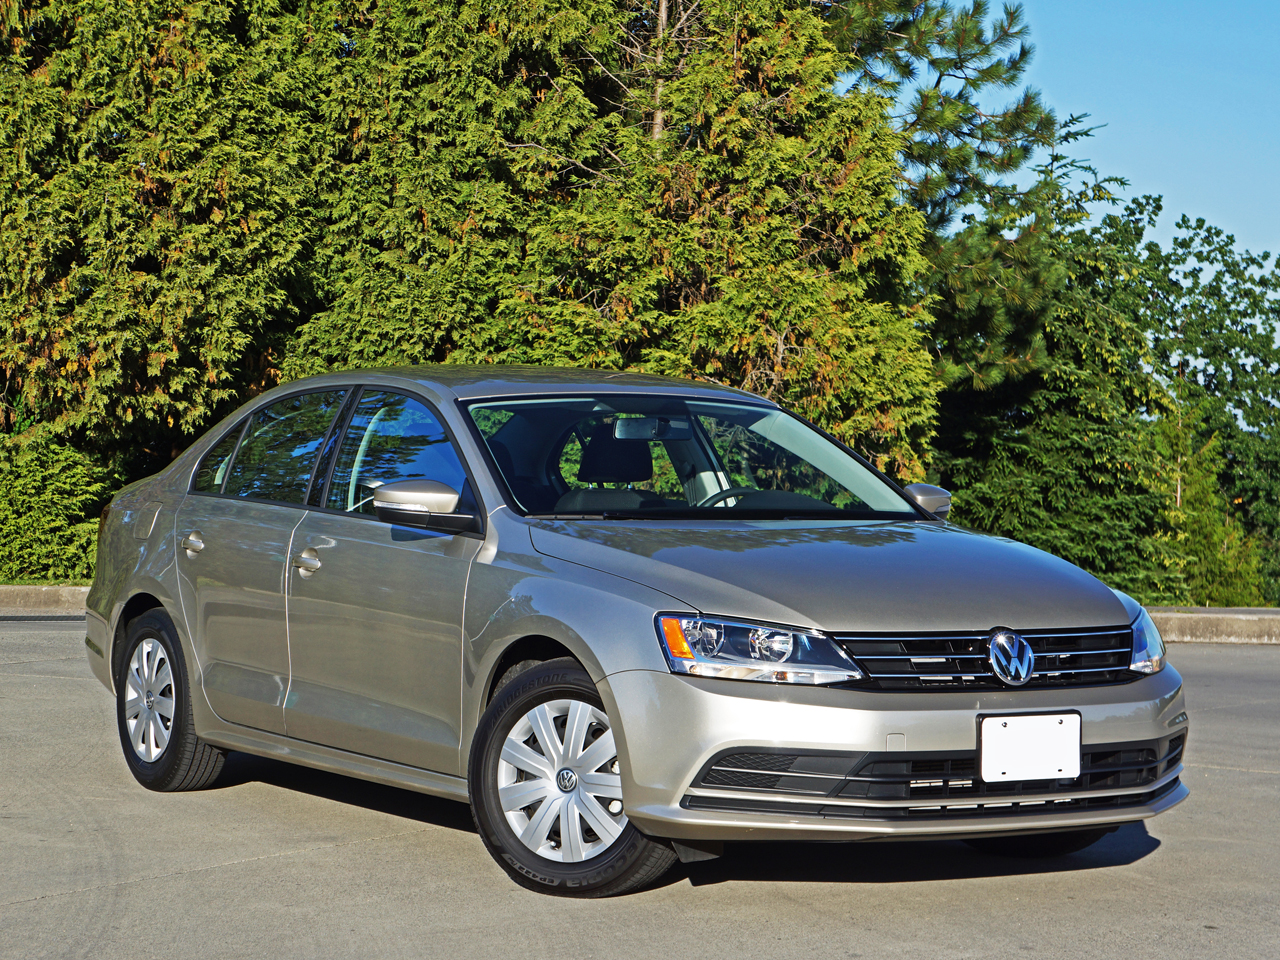 2016 Volkswagen Jetta 1 4 Tsi Trendline Plus Road Test Review Carcostcanada